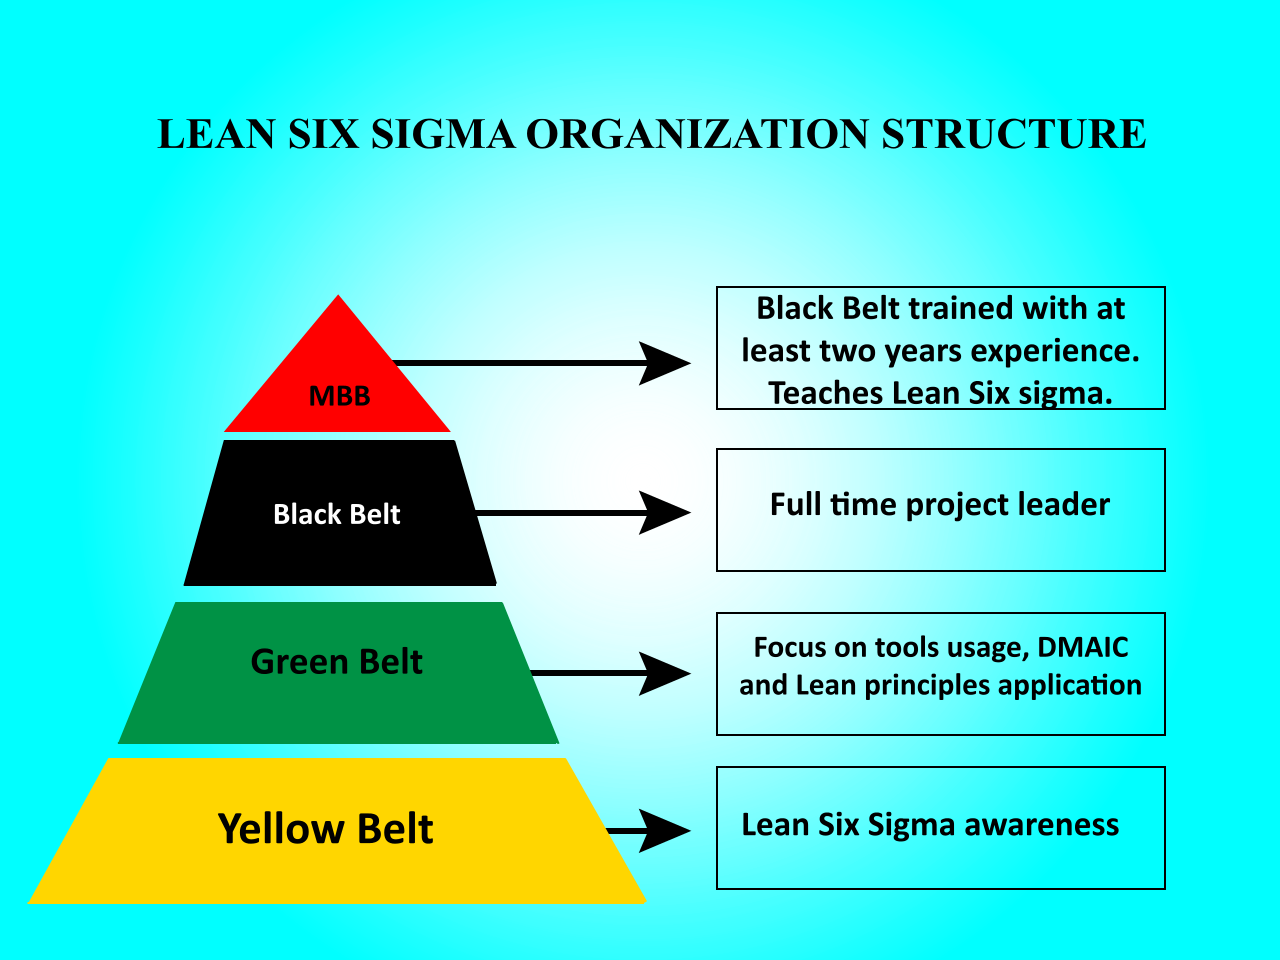 The Six Sigma Structure Pyramid